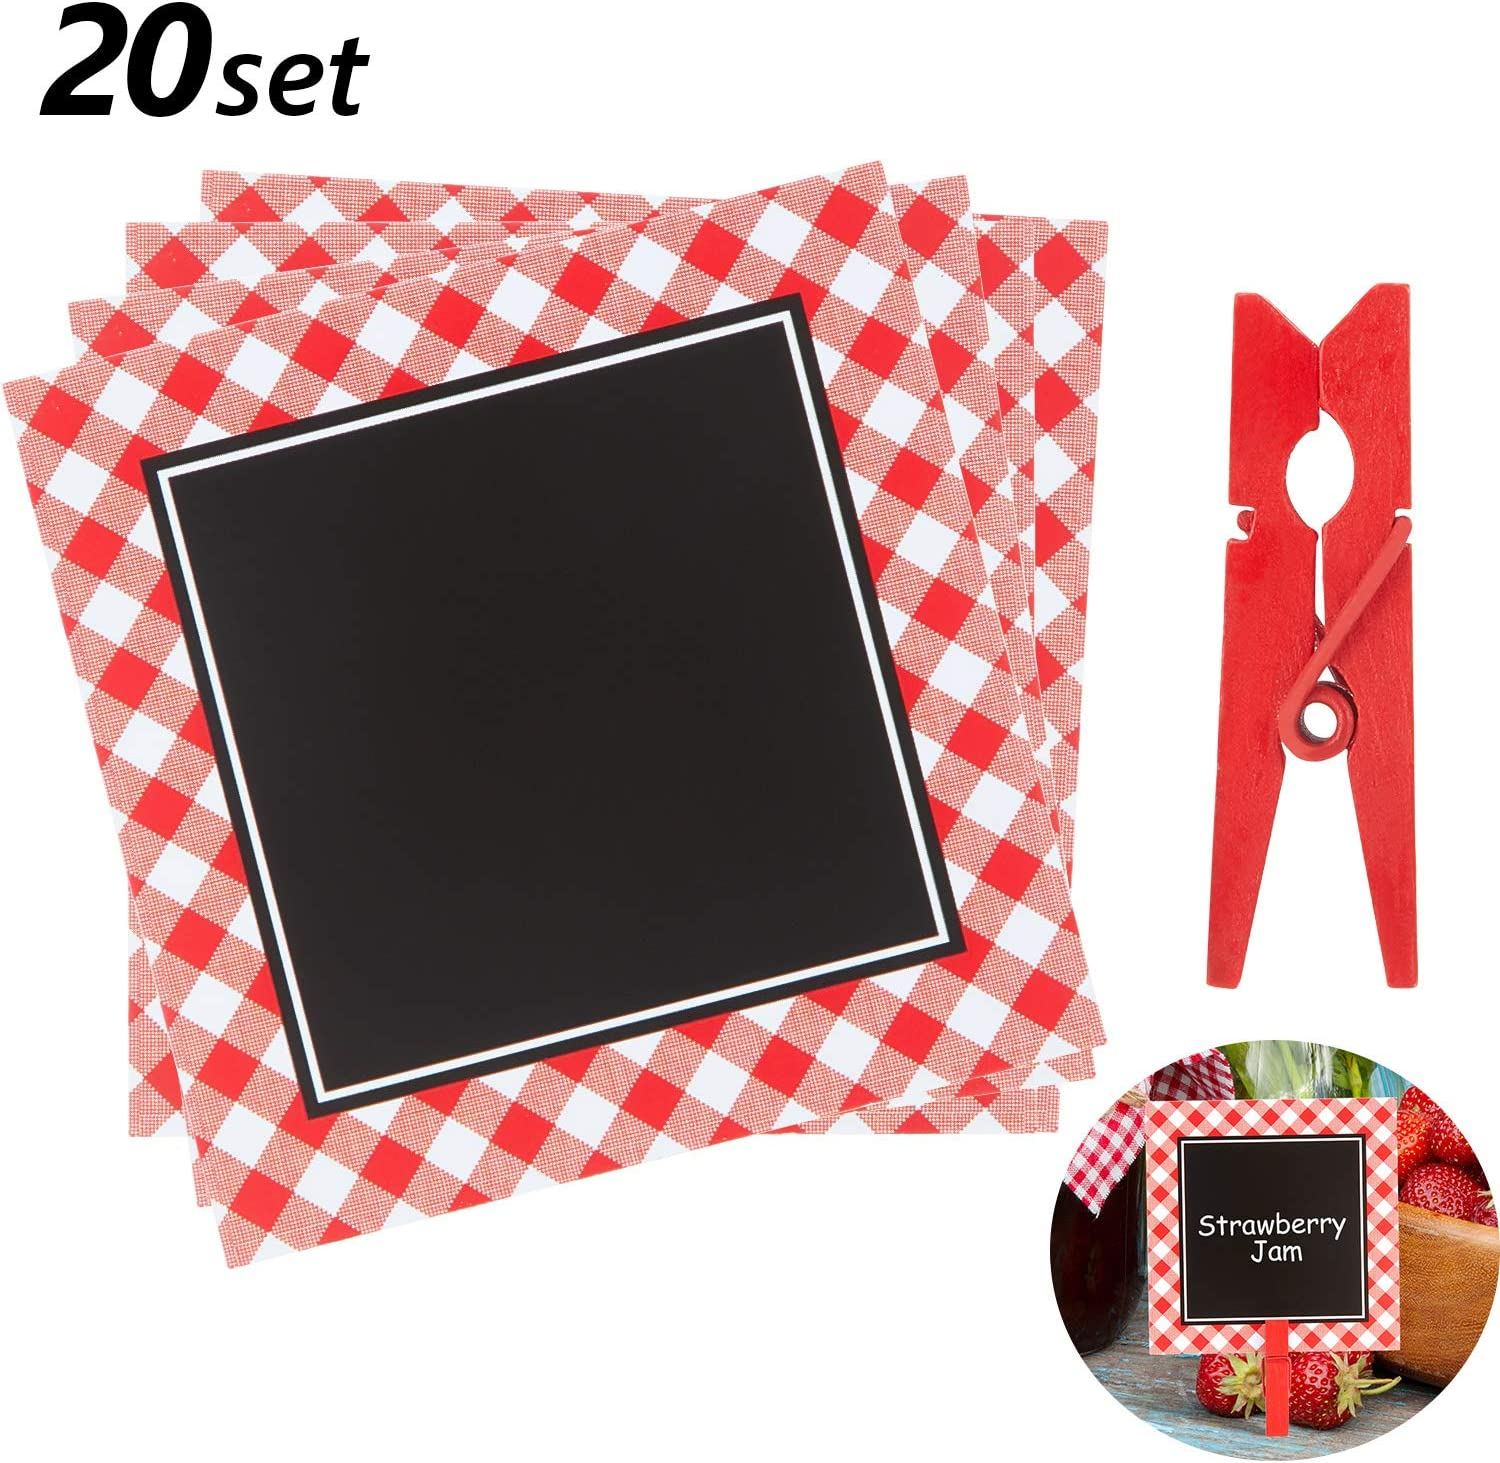 Picnic Party Chalkboard Cards BBQ Theme Mini Blackboard Red Gingham Chalkboard with Wooden Clips for Baby Shower Wedding Picnic Birthday Party Decoration, 3 Inch (20 Pieces)